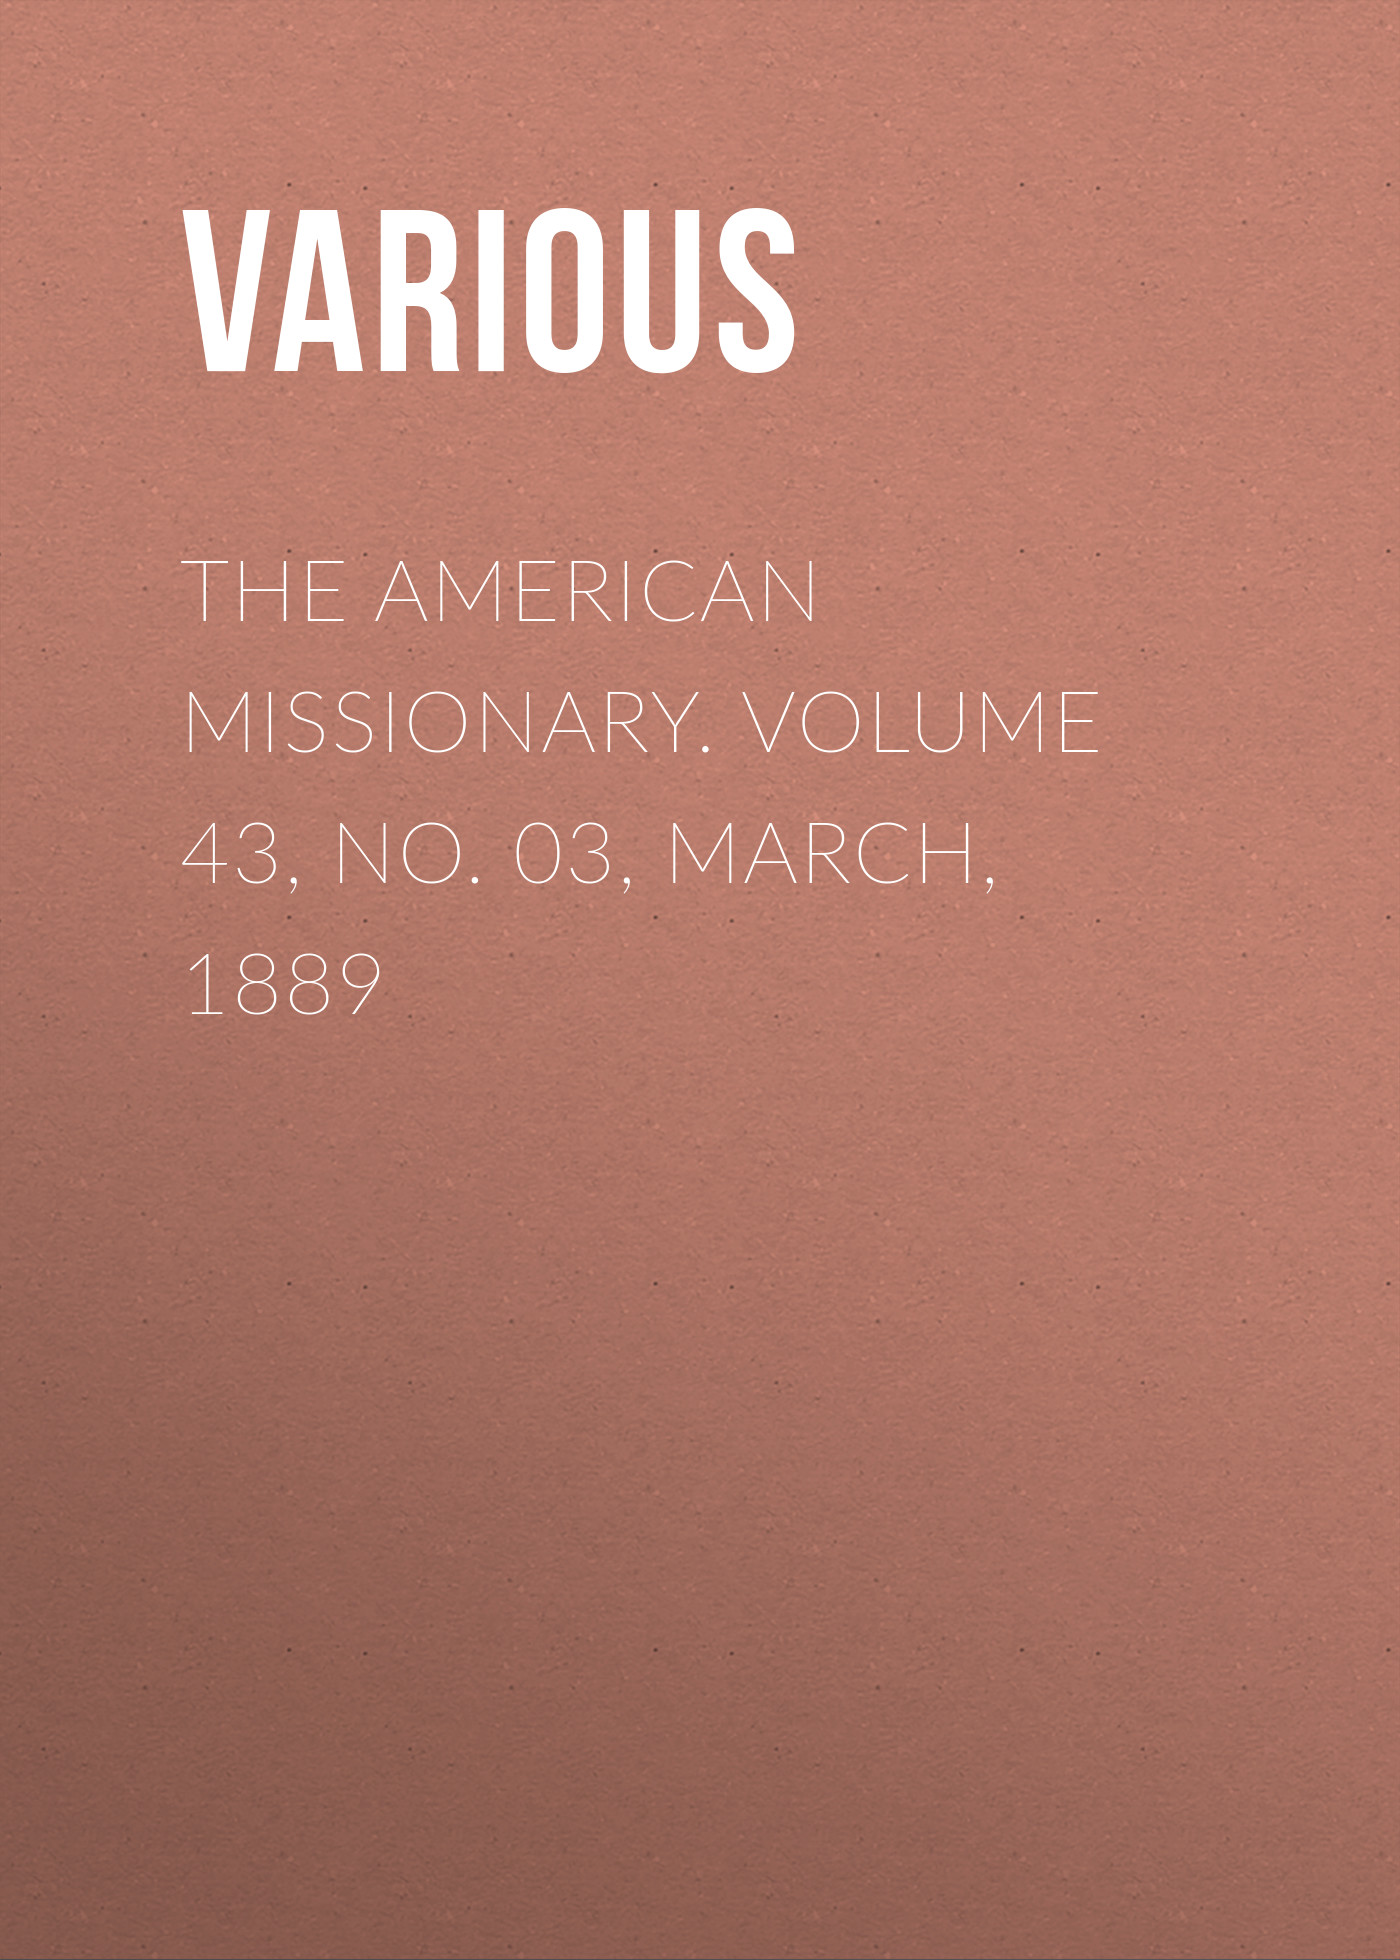 The American Missionary. Volume 43, No. 03, March, 1889